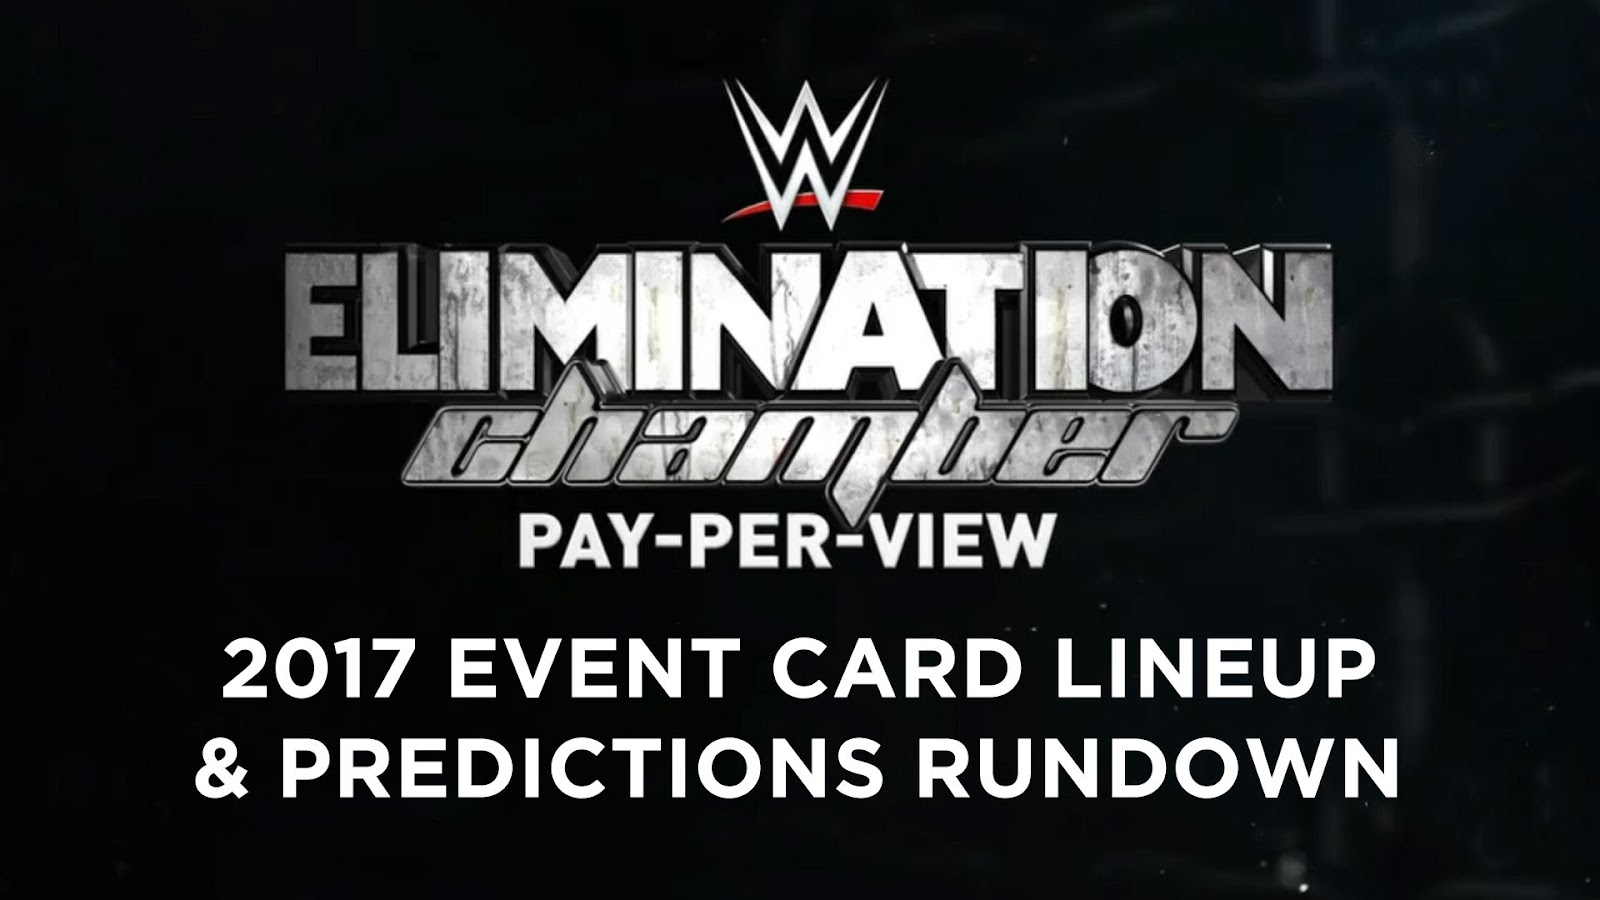 WWE Elimination Chamber 2017 spoilers podcast